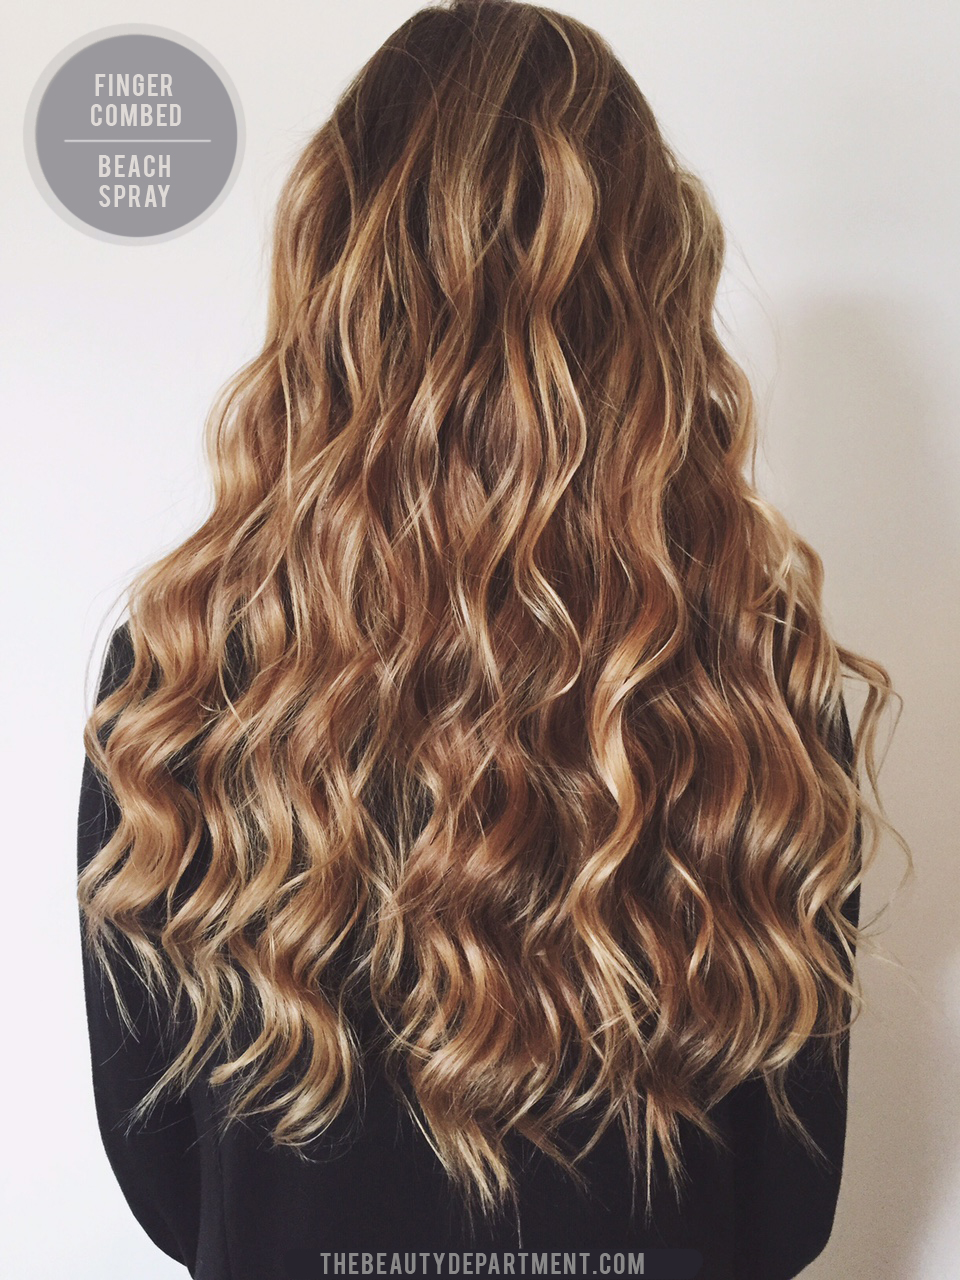 wand hair styles hairstyle waves and curls hairstyles 7888